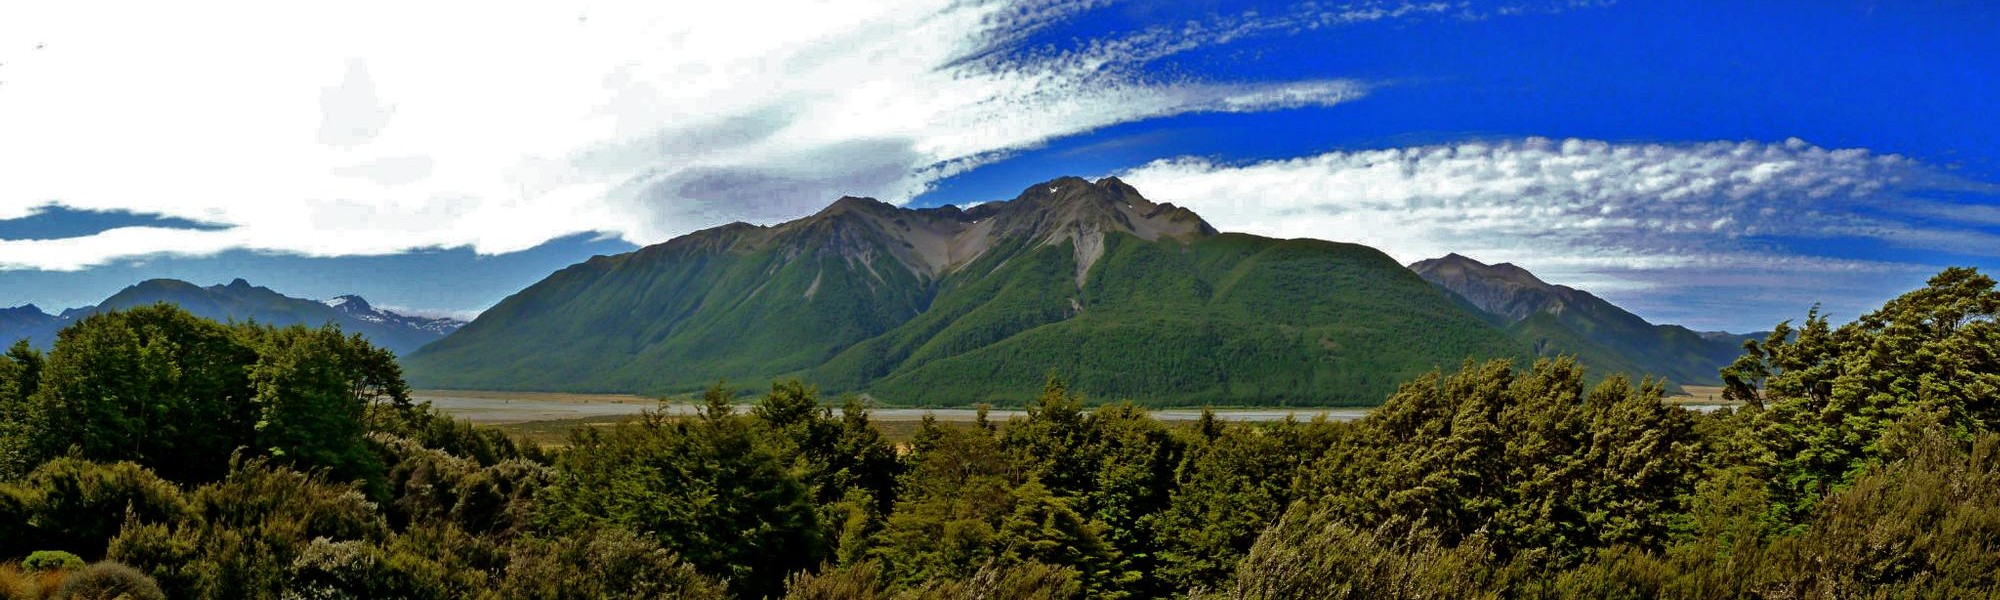 The view from New Zealand's Wilderness Lodge on the West Coast of the South Island is simply stunning